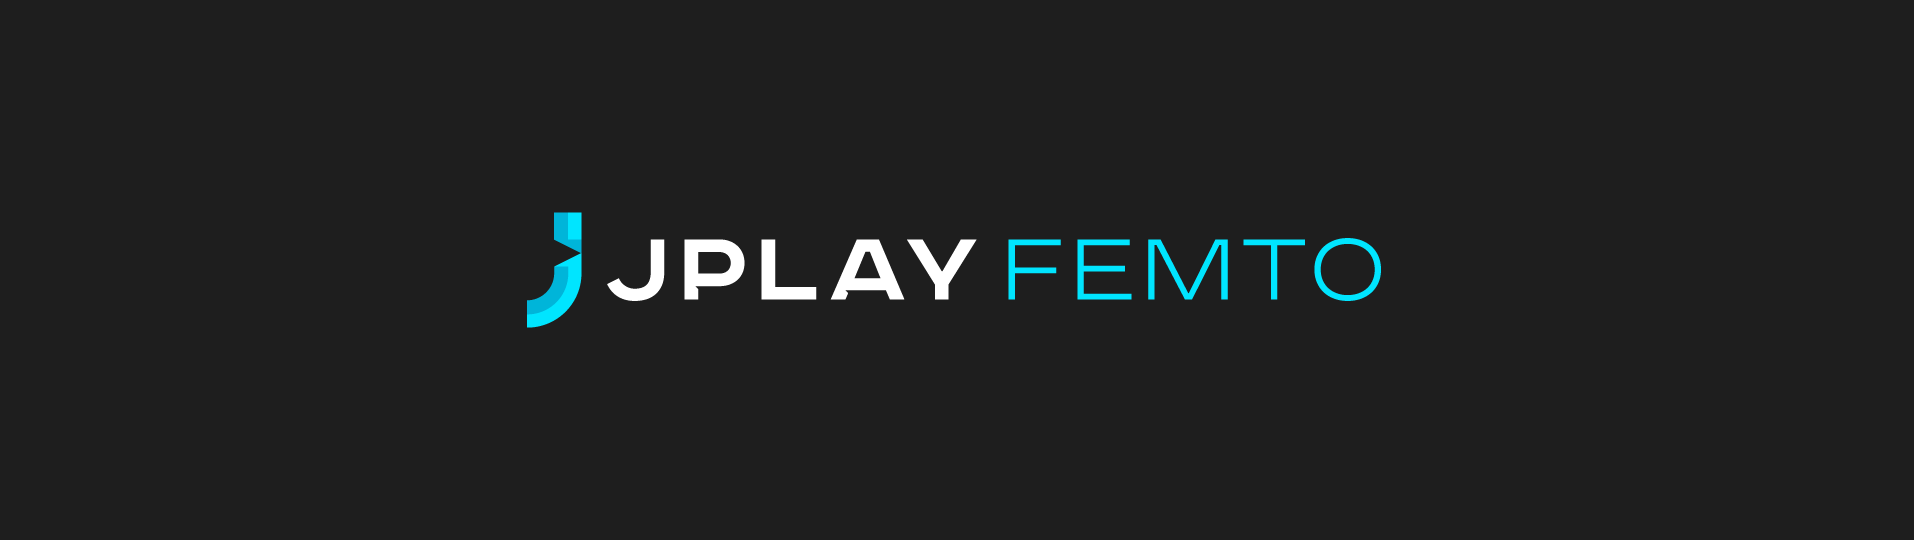 JPLAY FEMTO: The New Benchmark